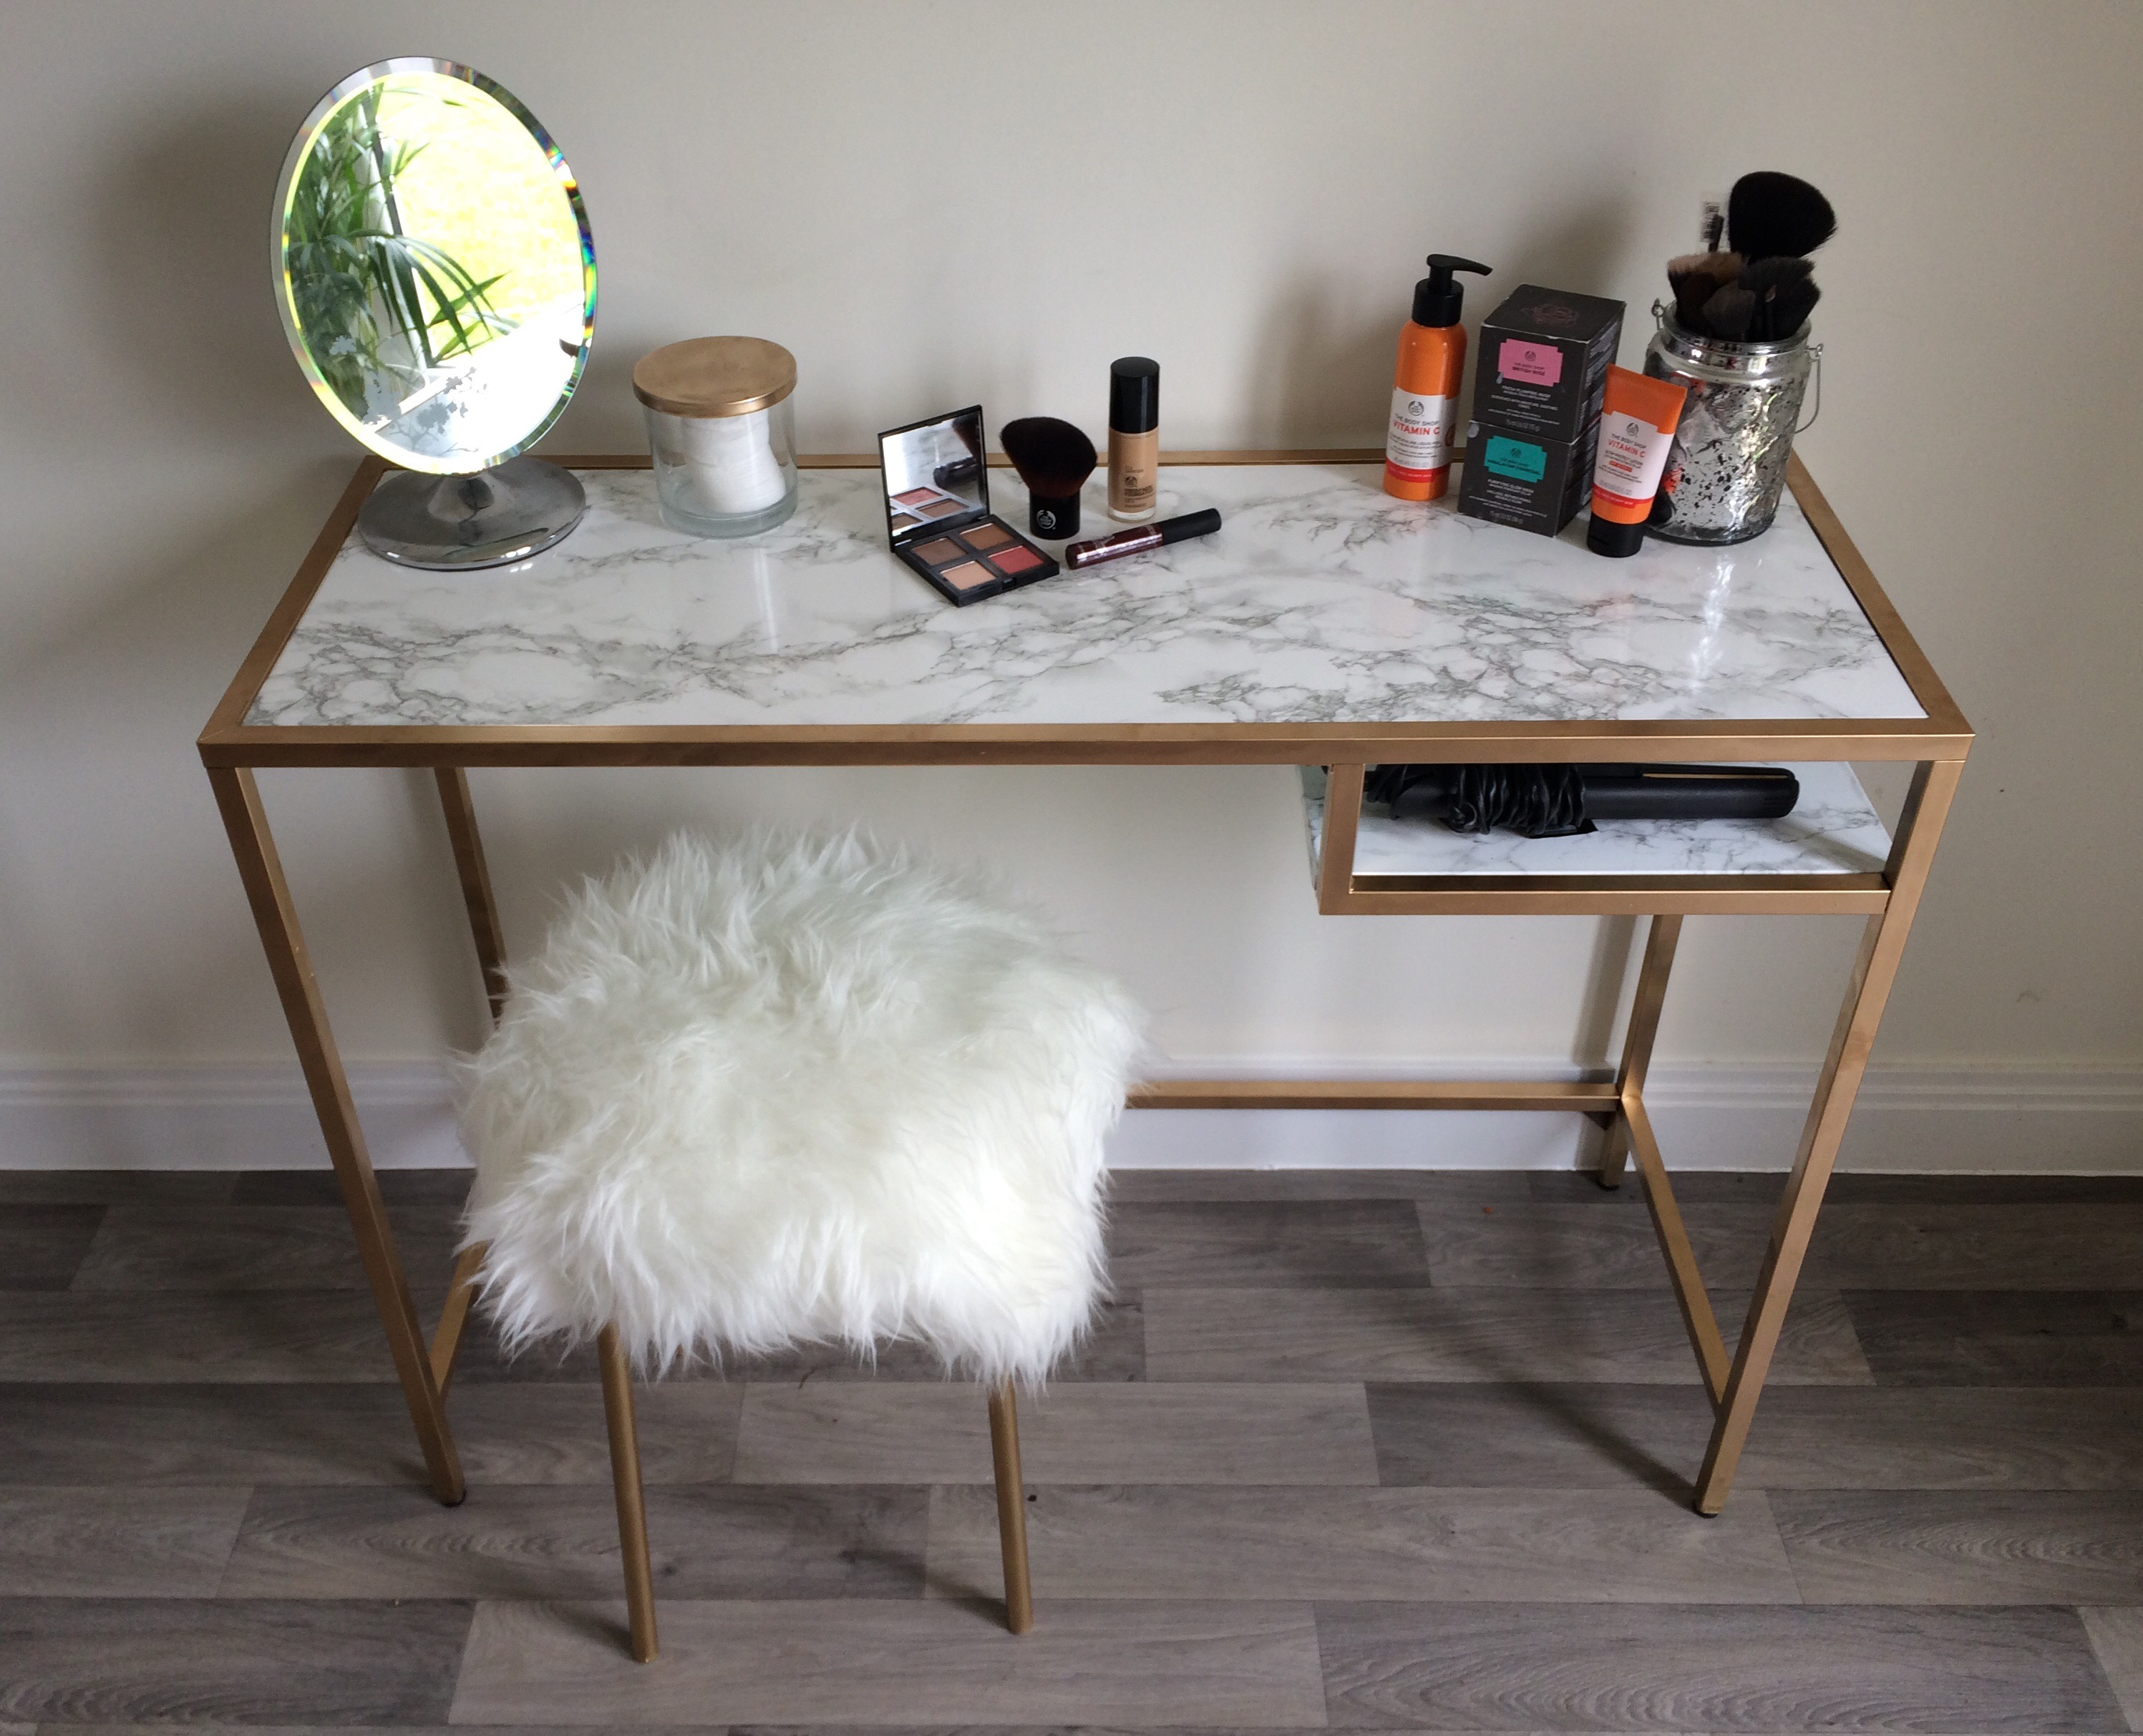 ikea hack bespoke make up table stool for under 60. Black Bedroom Furniture Sets. Home Design Ideas